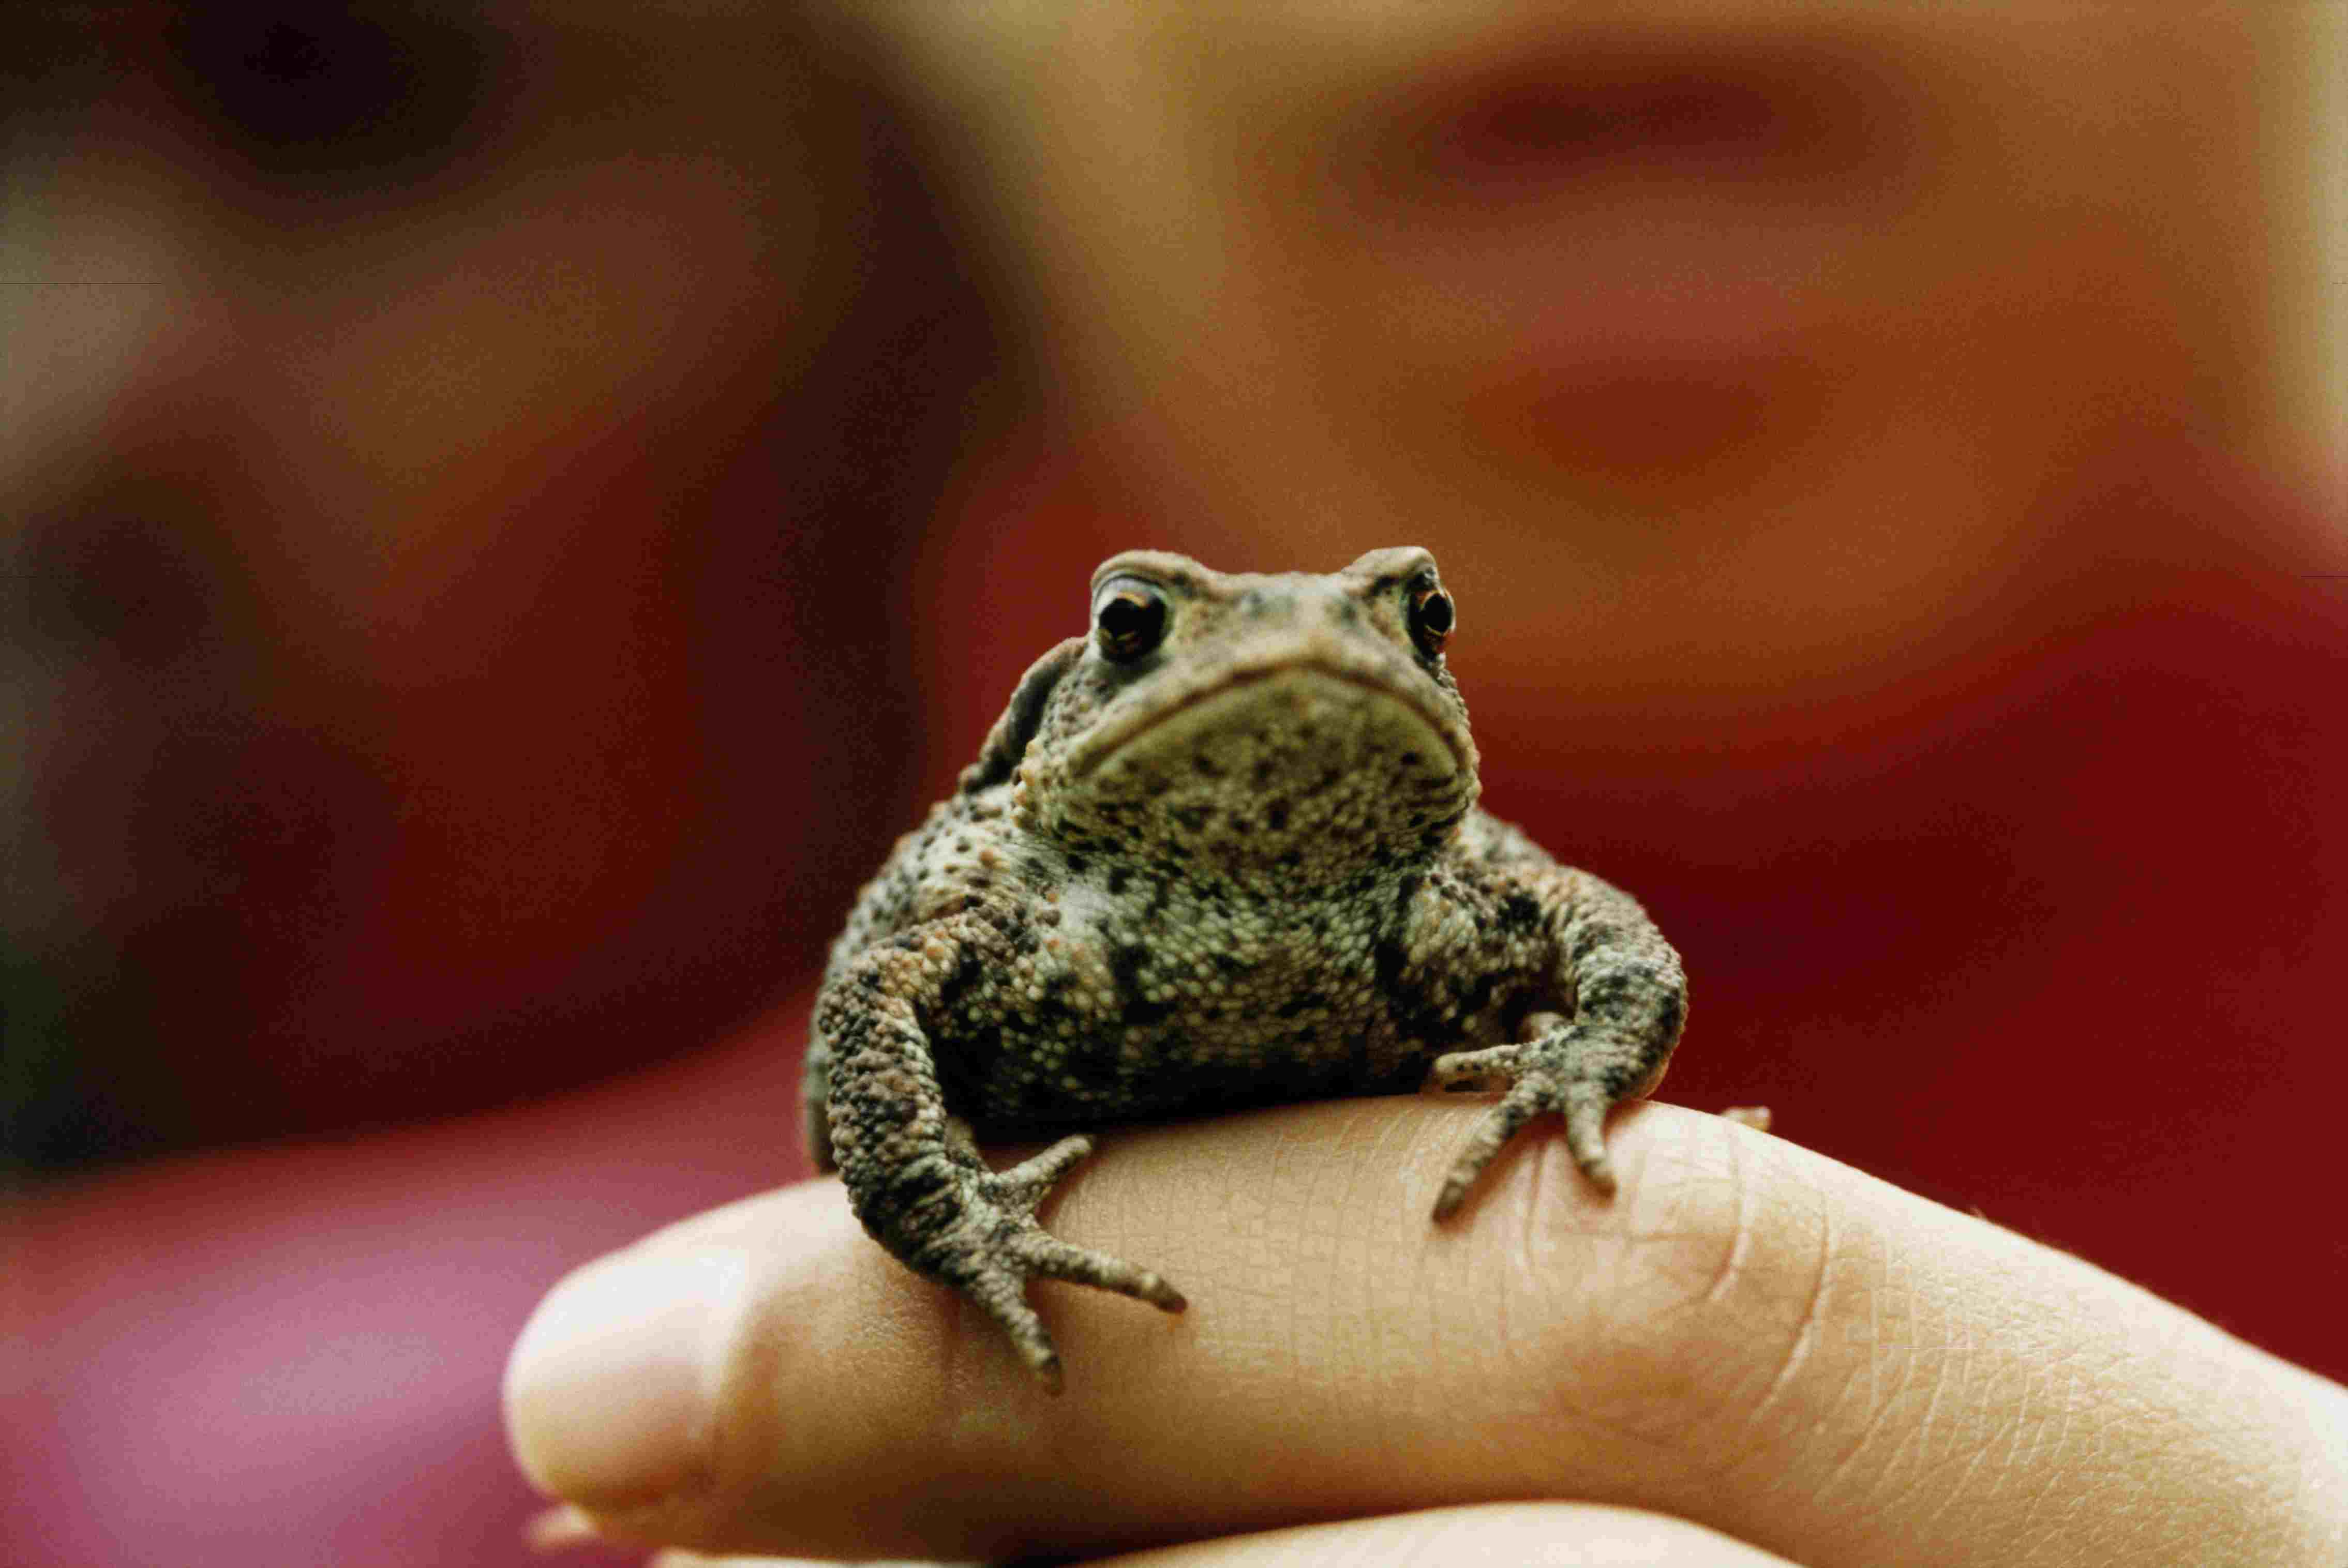 small frog in a person's hand